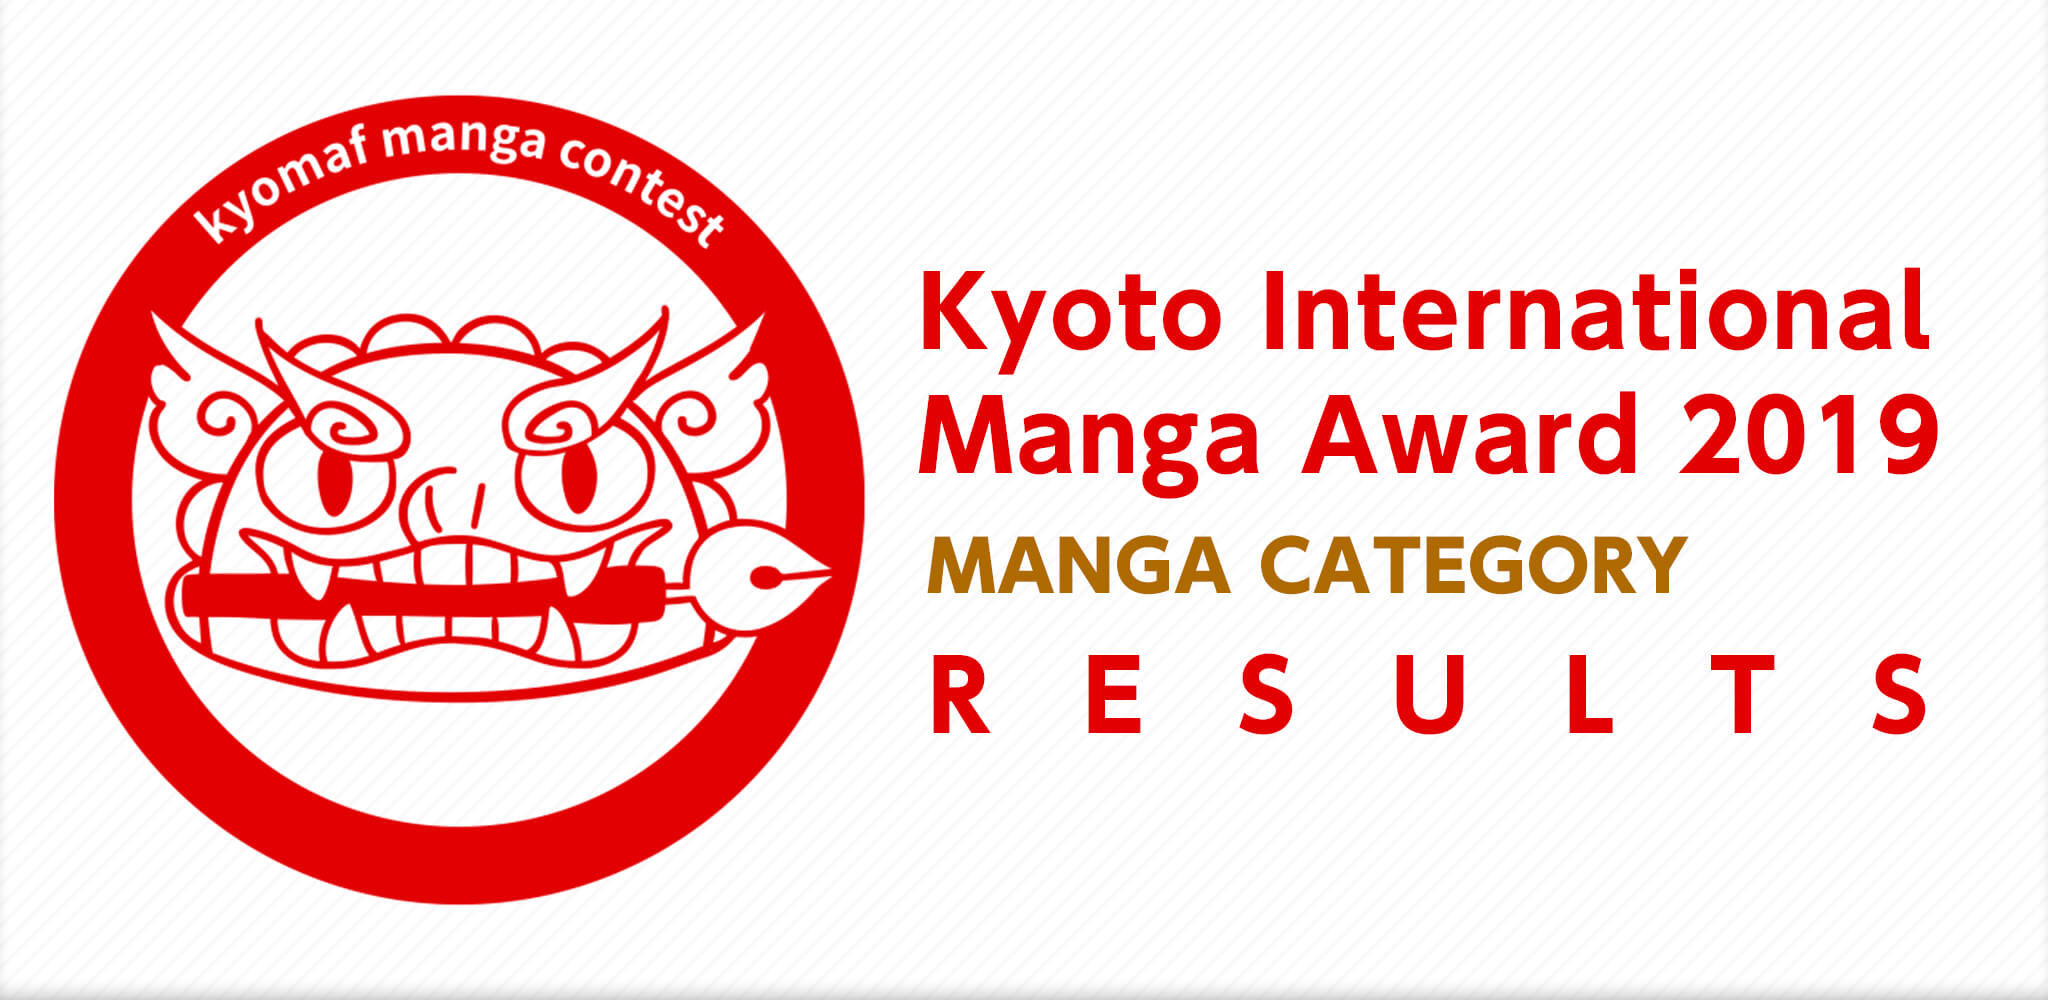 Kyoto International Manga Award 2019 Results | Contest  - ART street by MediBang